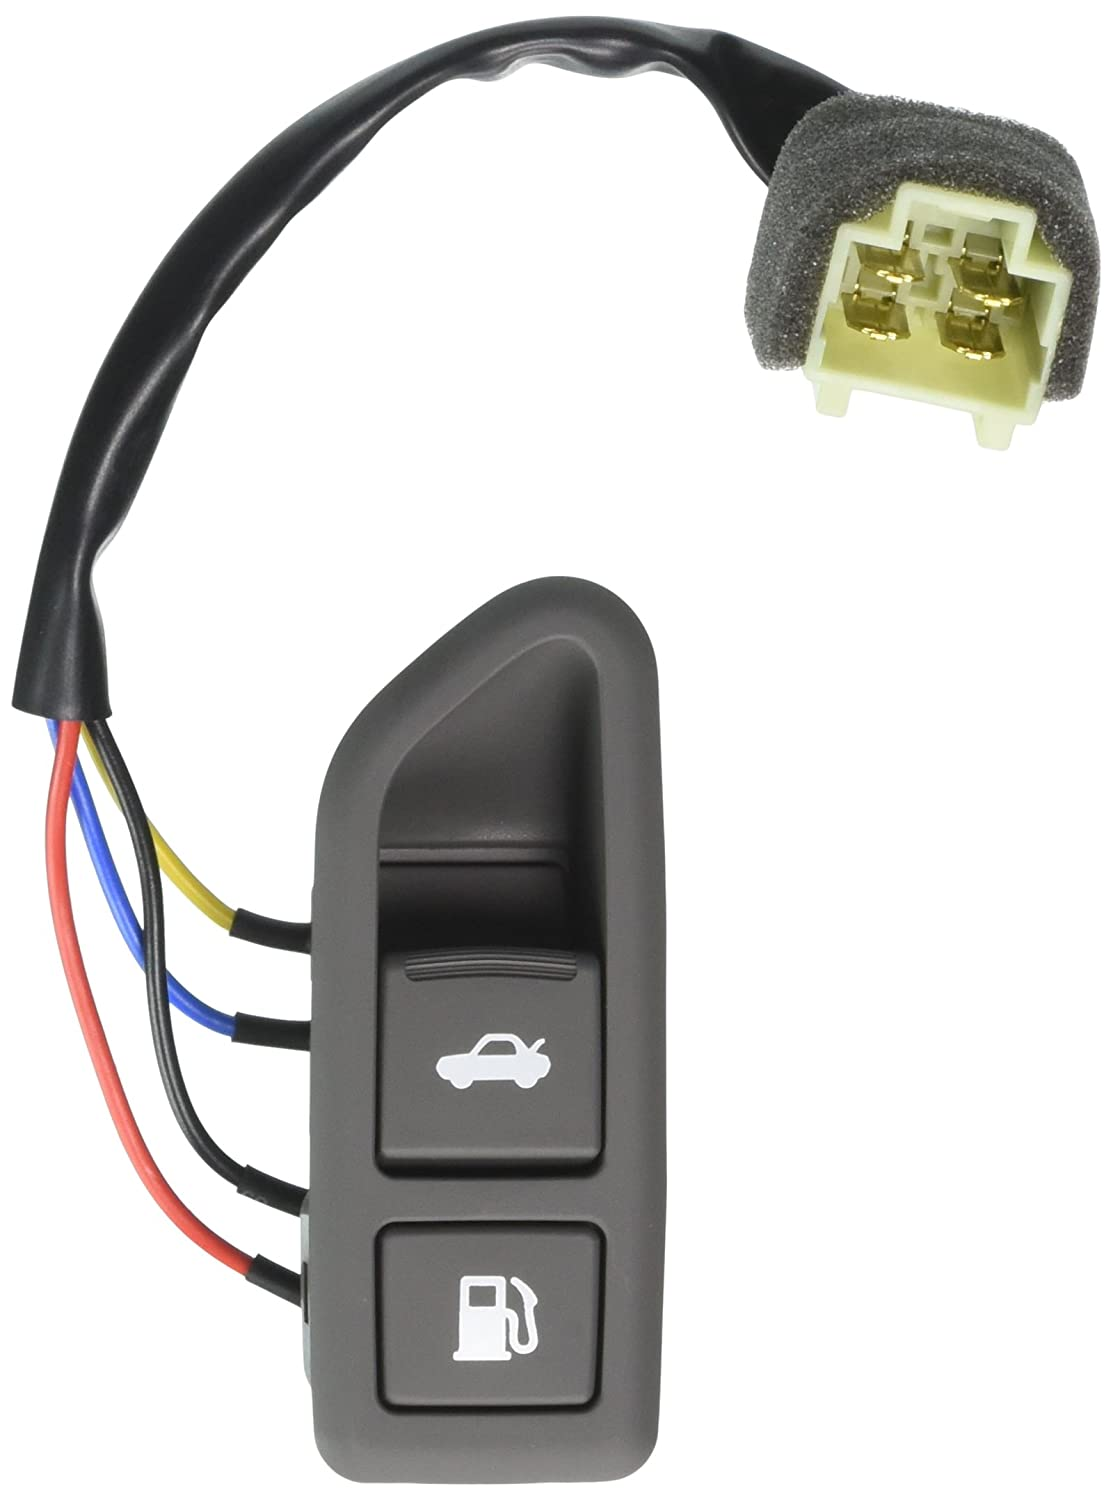 Genuine Hyundai 93555-3K500-U7 Trunk Lid and Fuel Filler Door Switch Assembly